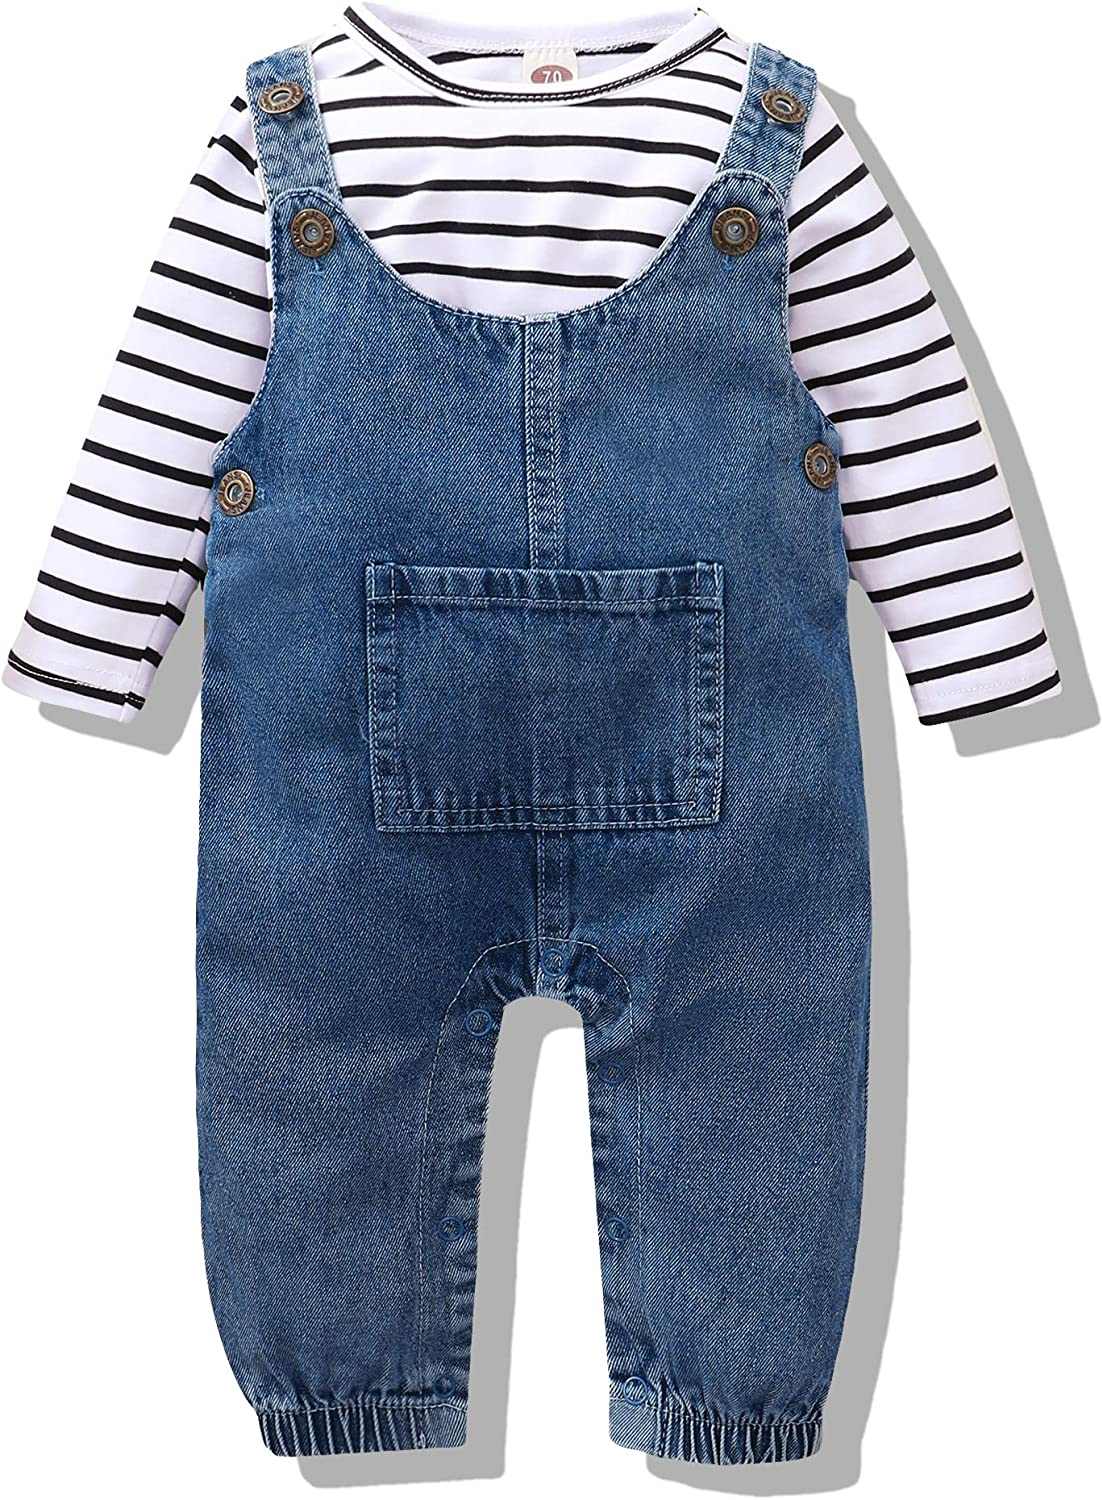 summer clothing unisex linen outfit baby linen outfit baby overalls baby linen playsuit kids summer romper